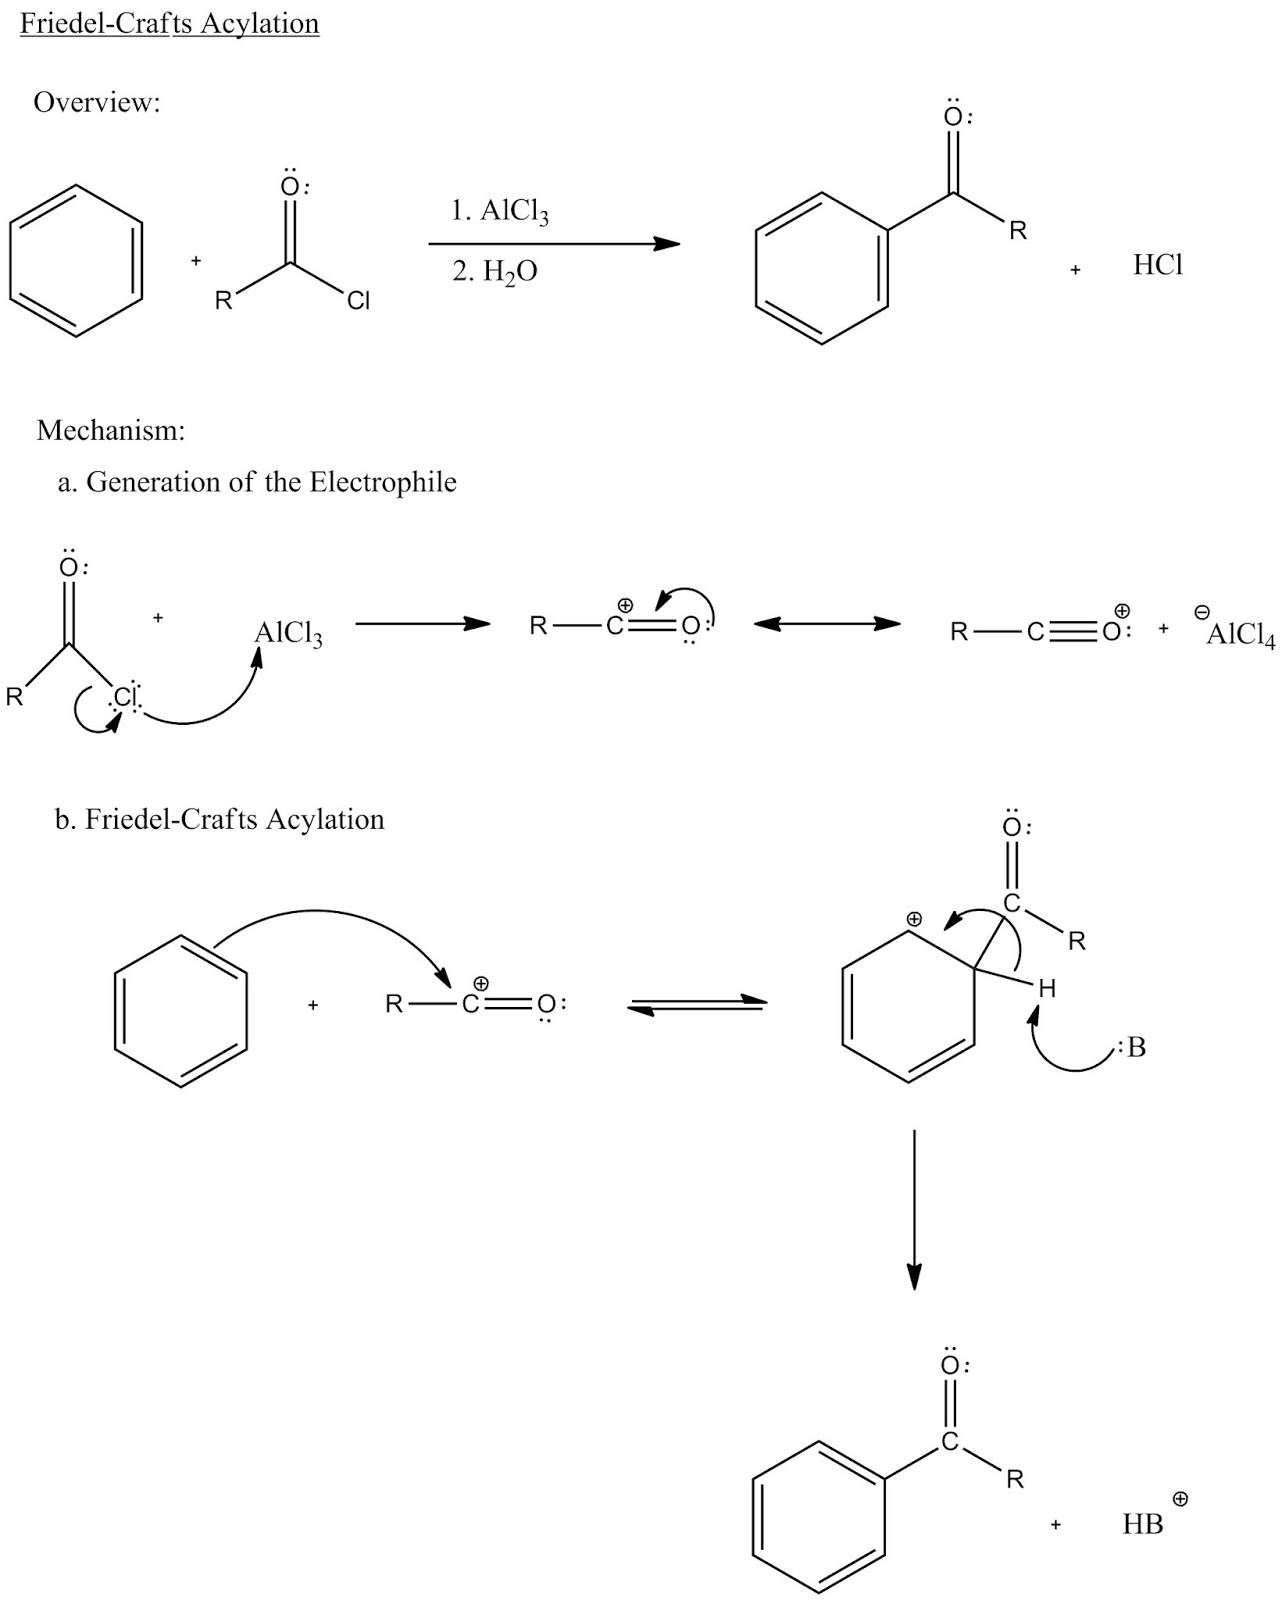 Friedel crafts acylation synthesis of 4 methoxyacetophenone